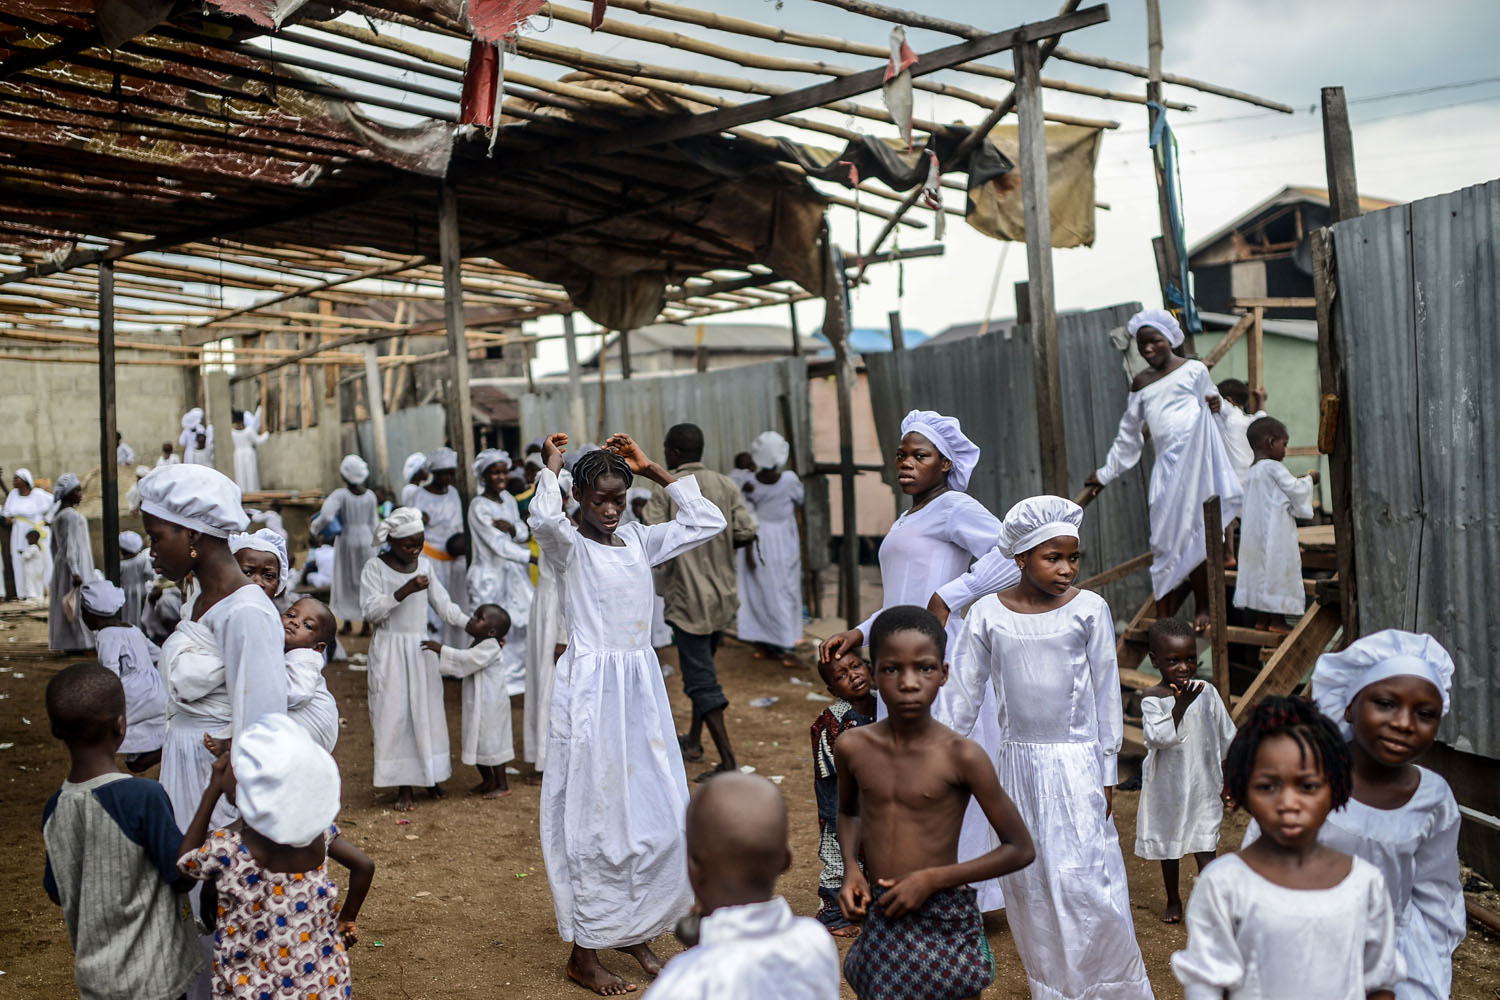 May 4, 2014. Christians wait for a religious ceremony at the Church of God in the floating Slum neighborhood of Makoko in Lagos, Nigeria.